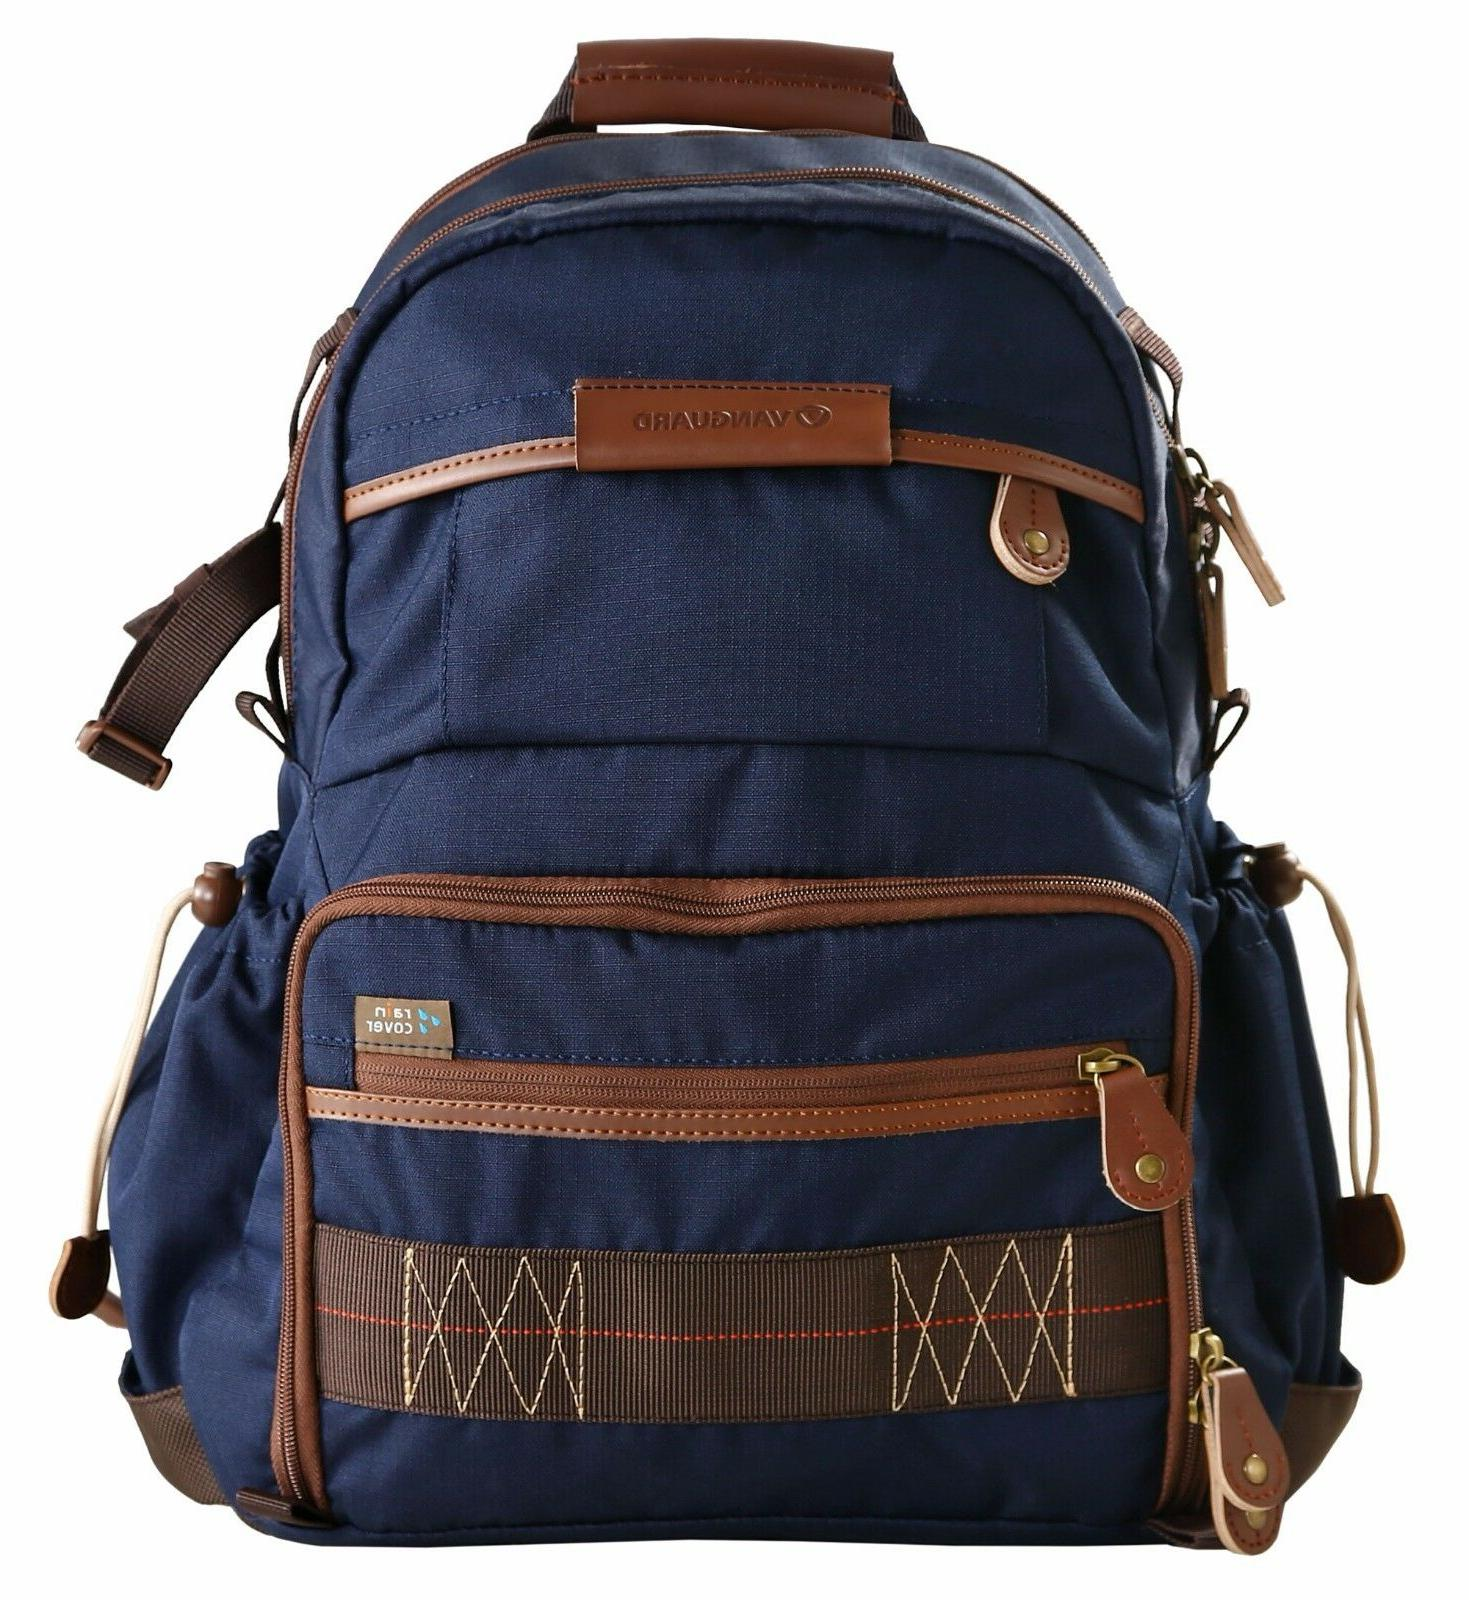 Vanguard HAVANA 41 Backpack with Rain Cover for DSLR Camera